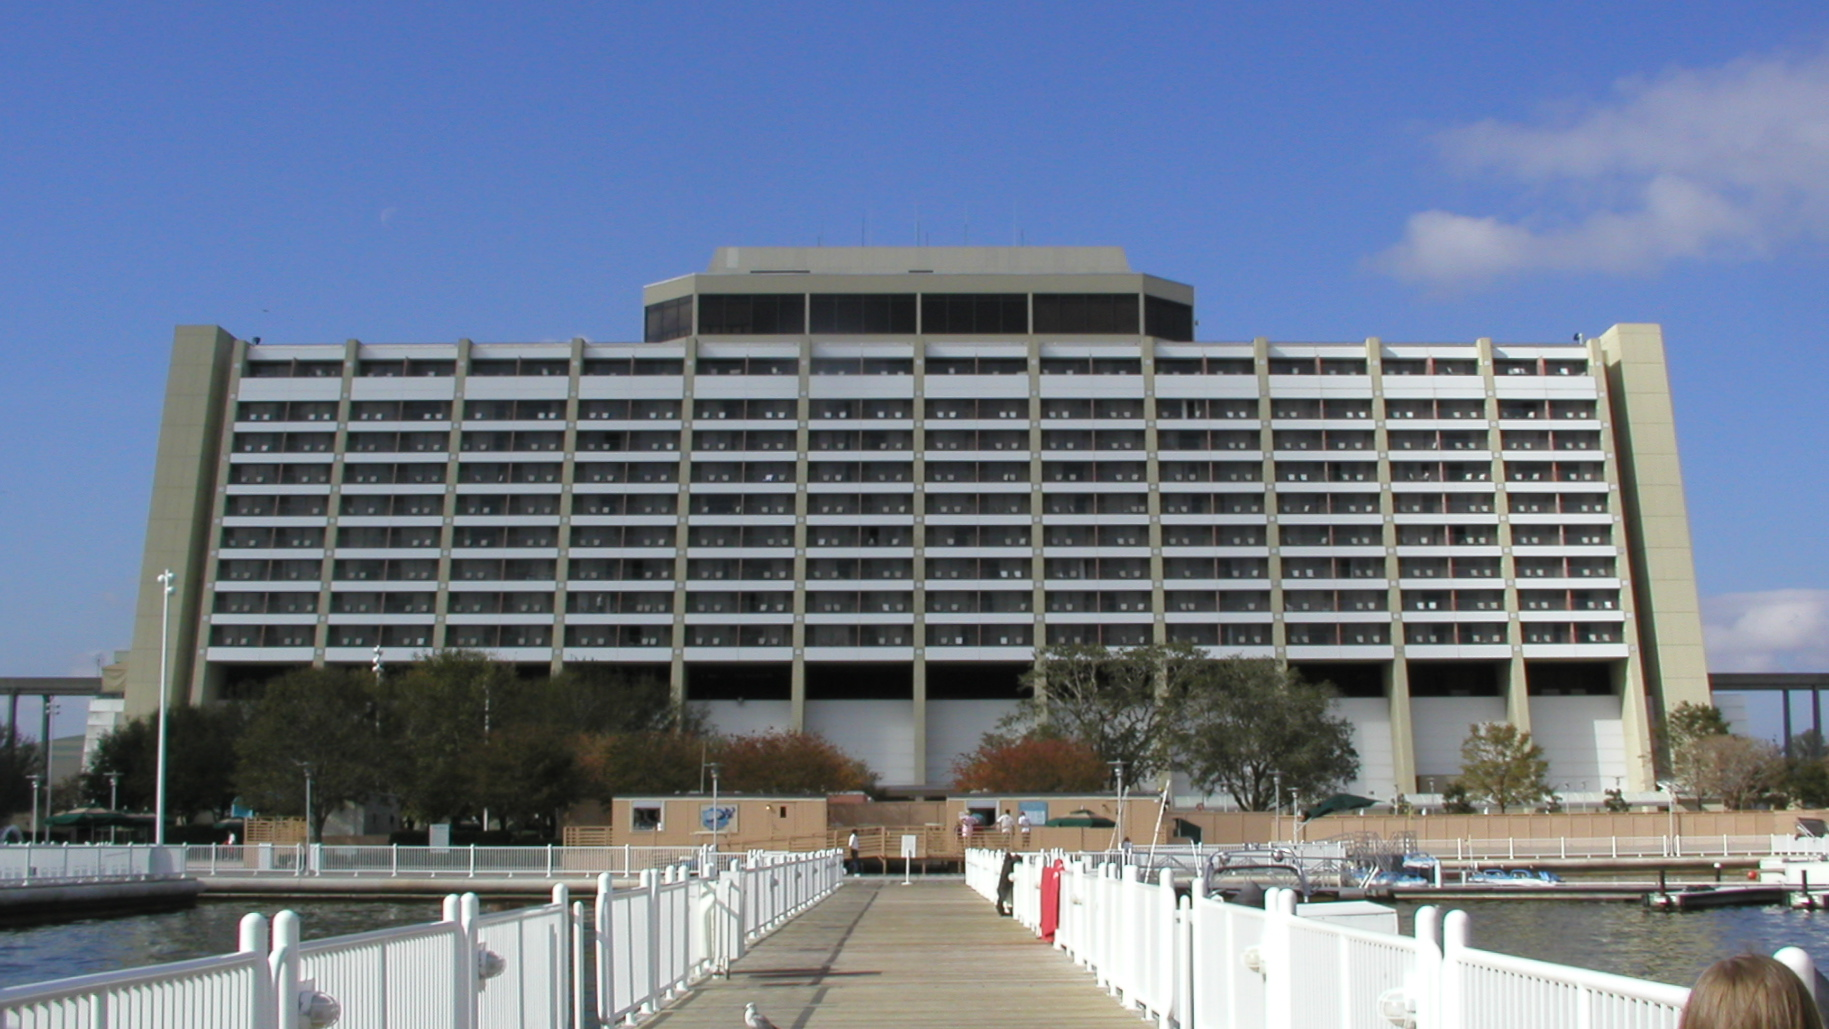 http://upload.wikimedia.org/wikipedia/commons/0/0c/Disney%27s_Contemporary_Resort.jpg